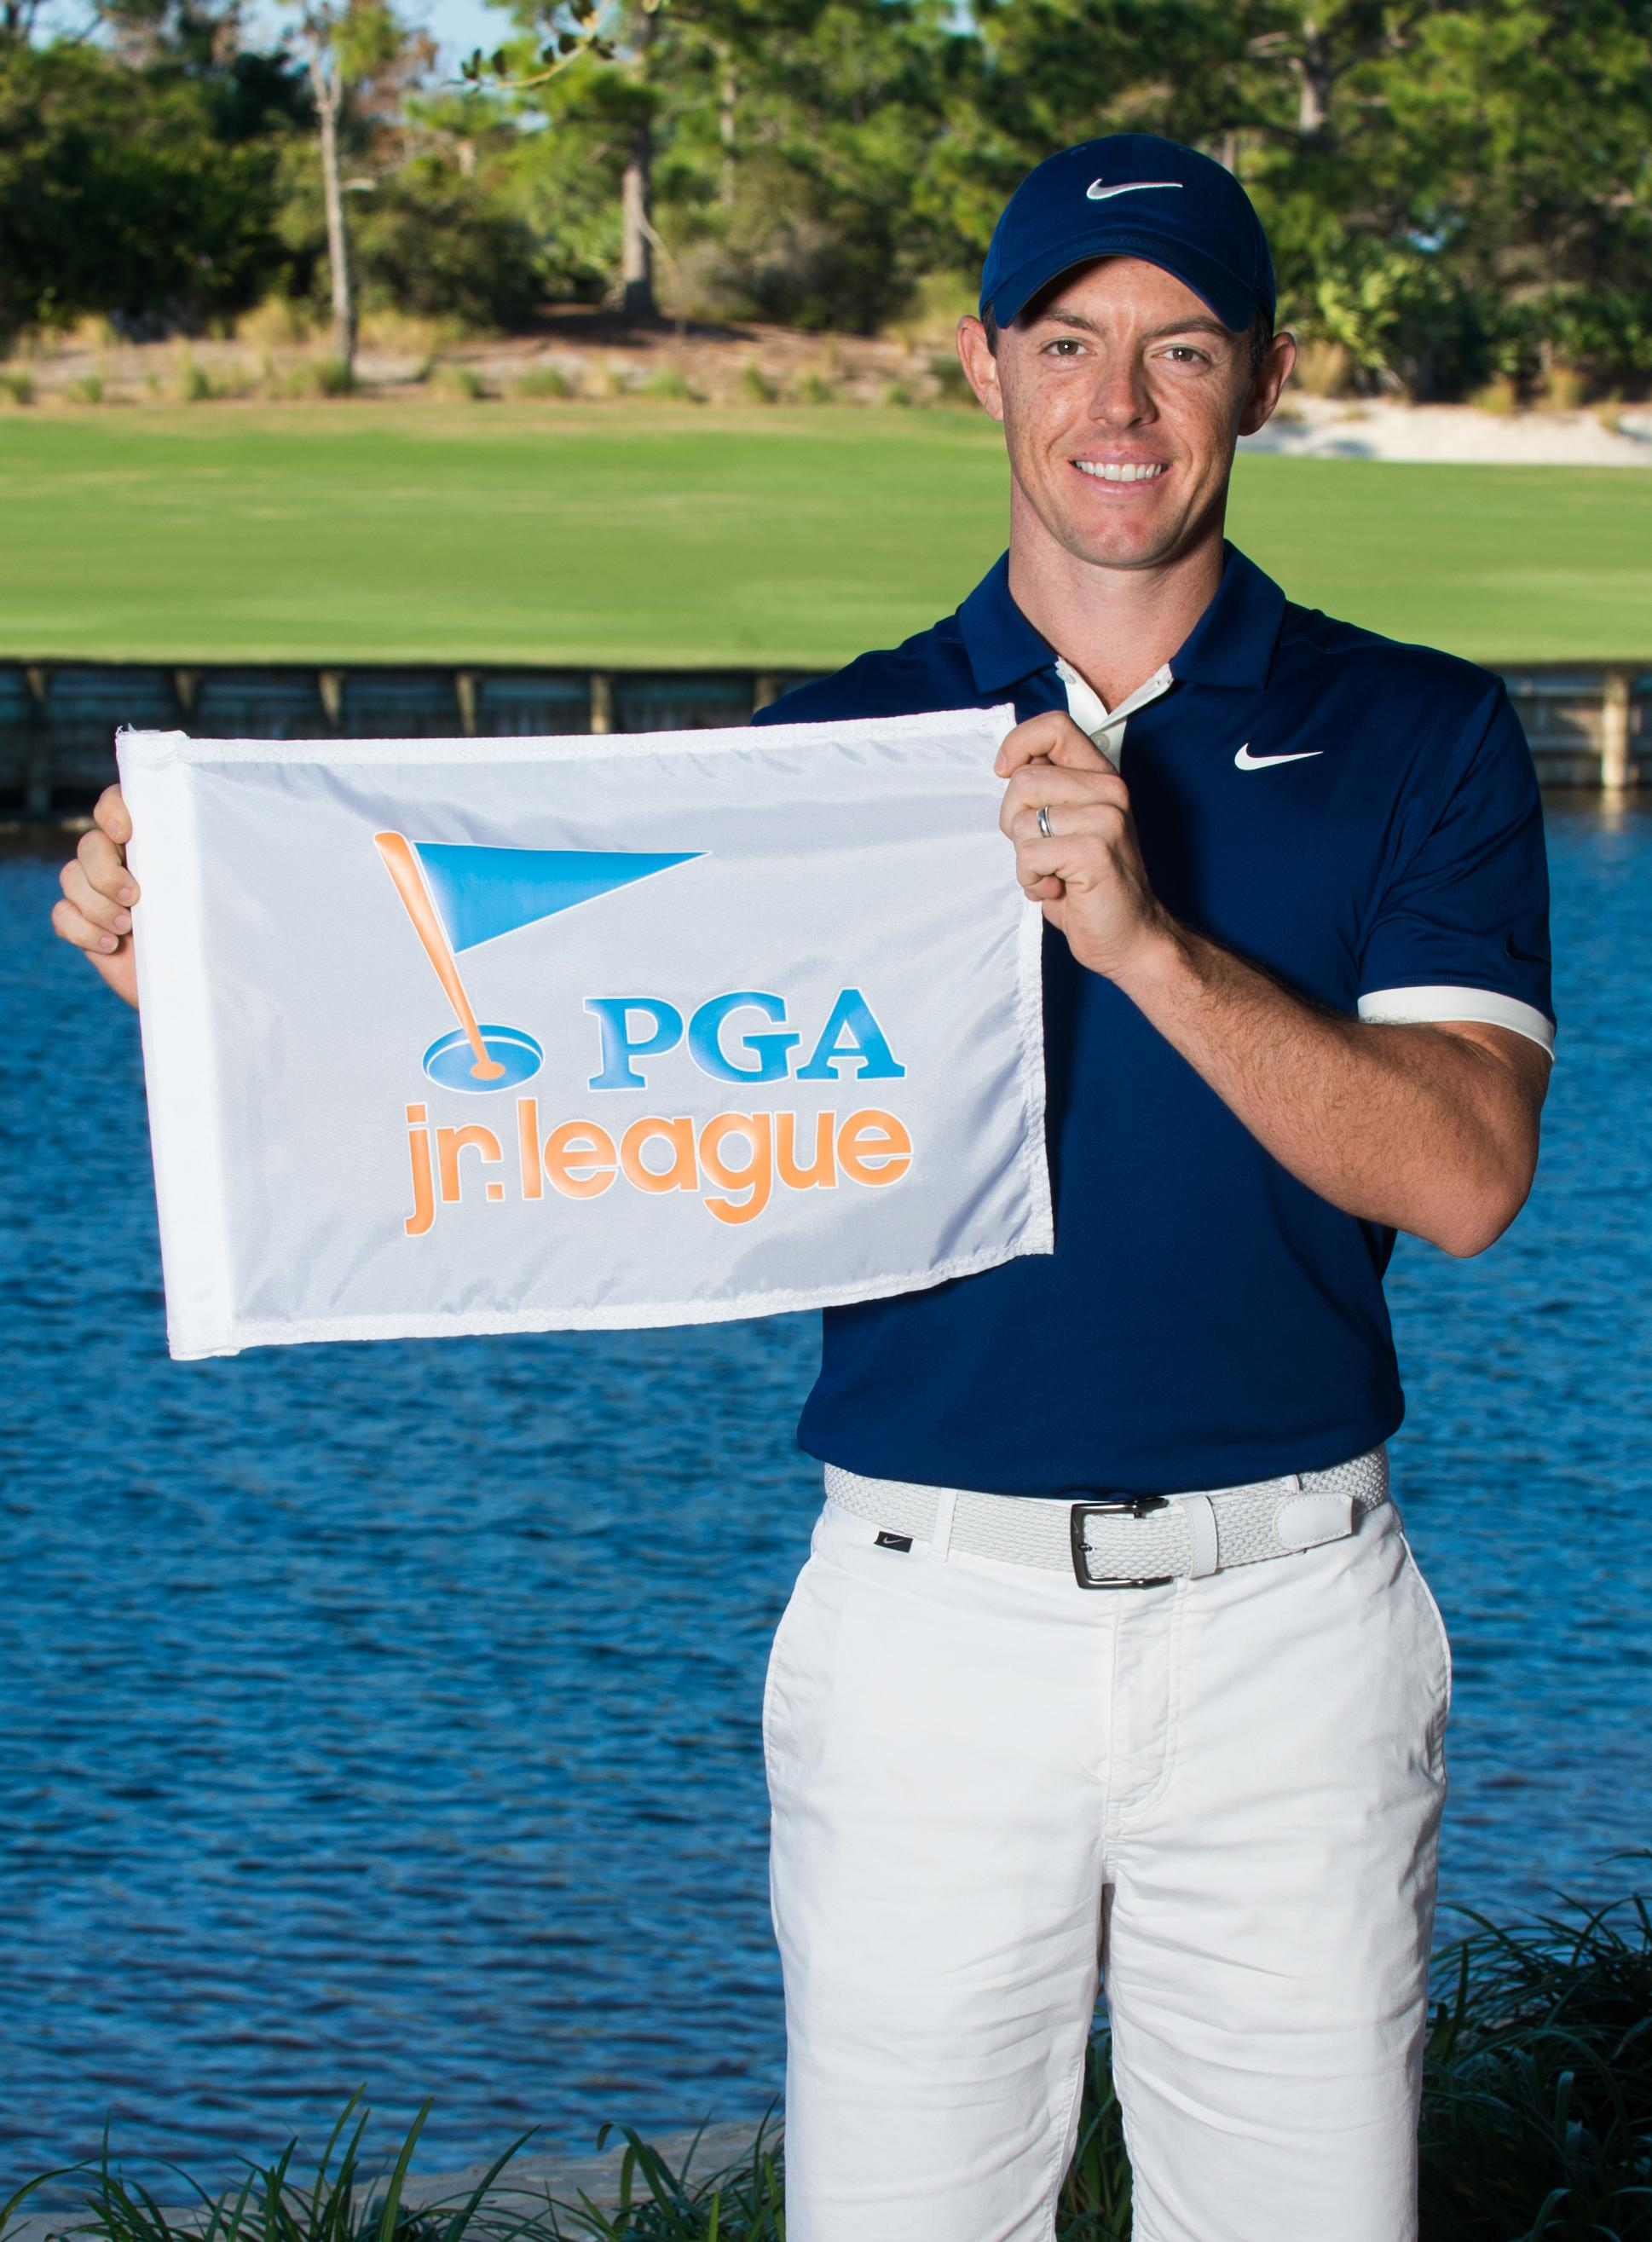 PGA Jr. League Ambassador Rory McIlroy